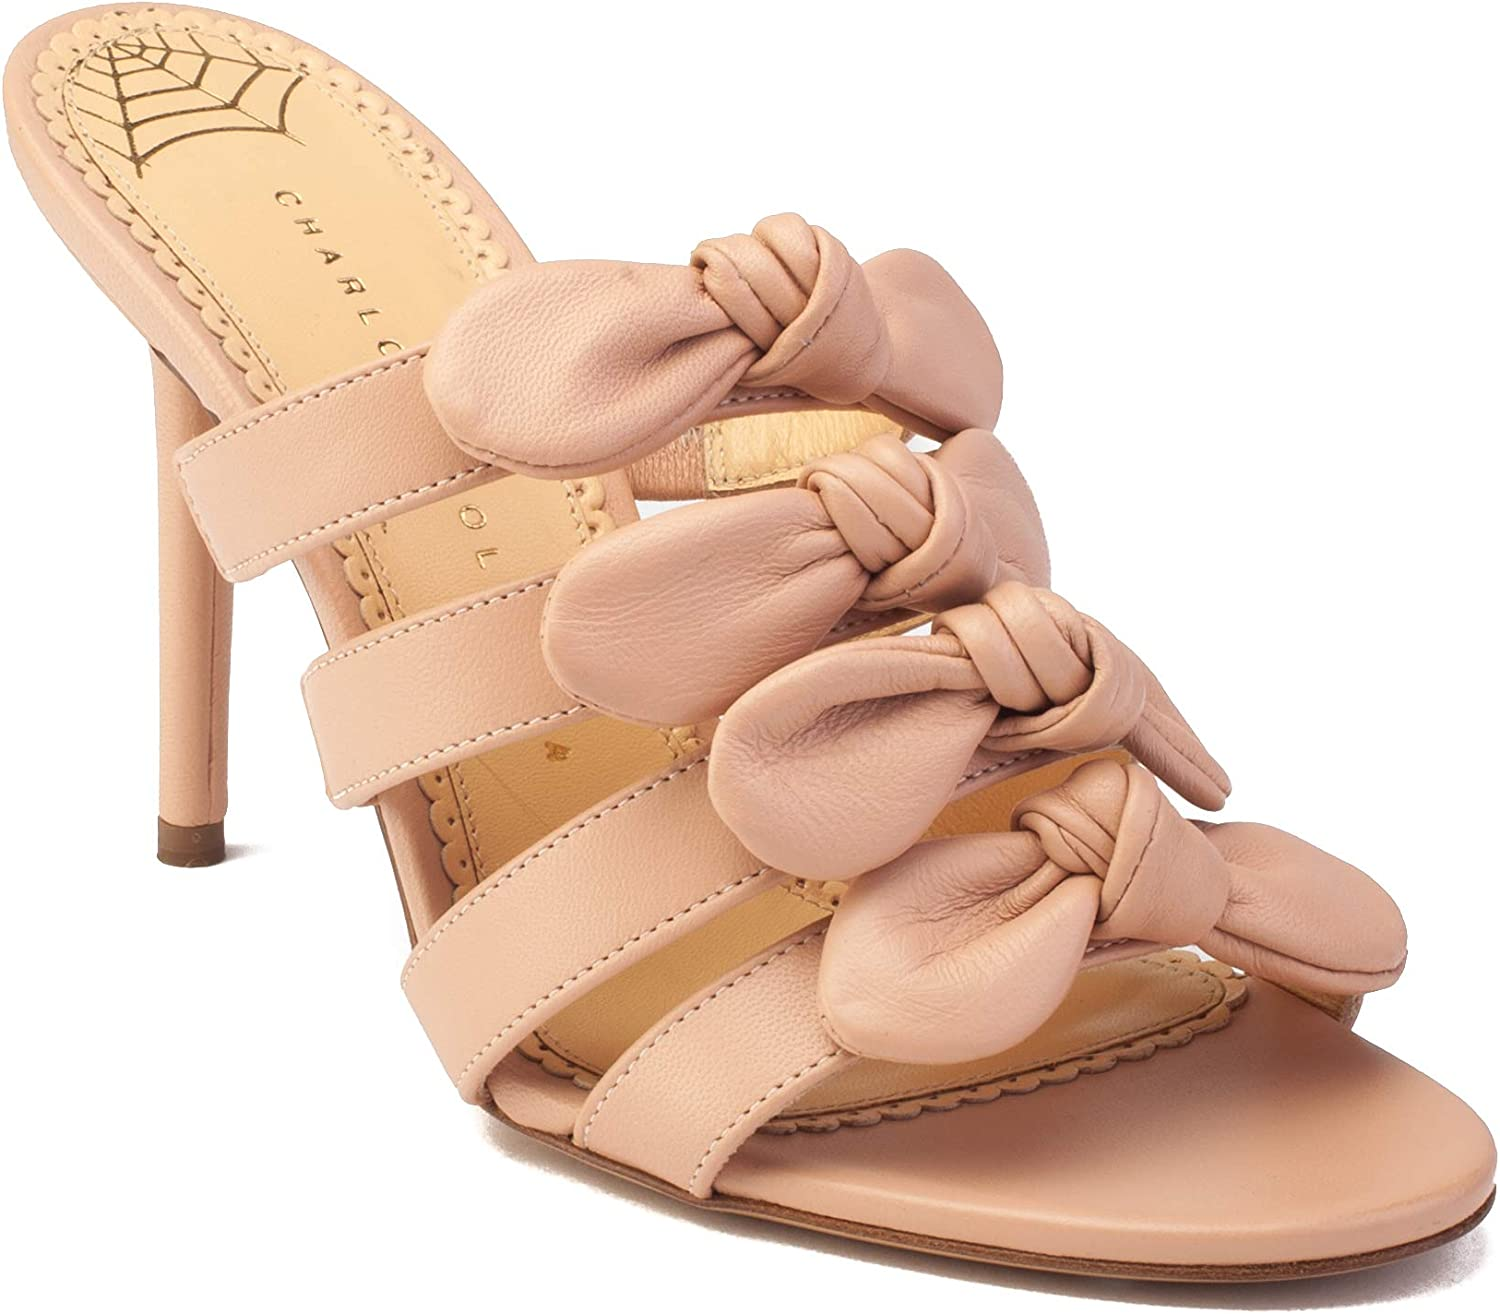 Charlotte Olympia Women's 'Blyton' Leather Heels Pink shoes